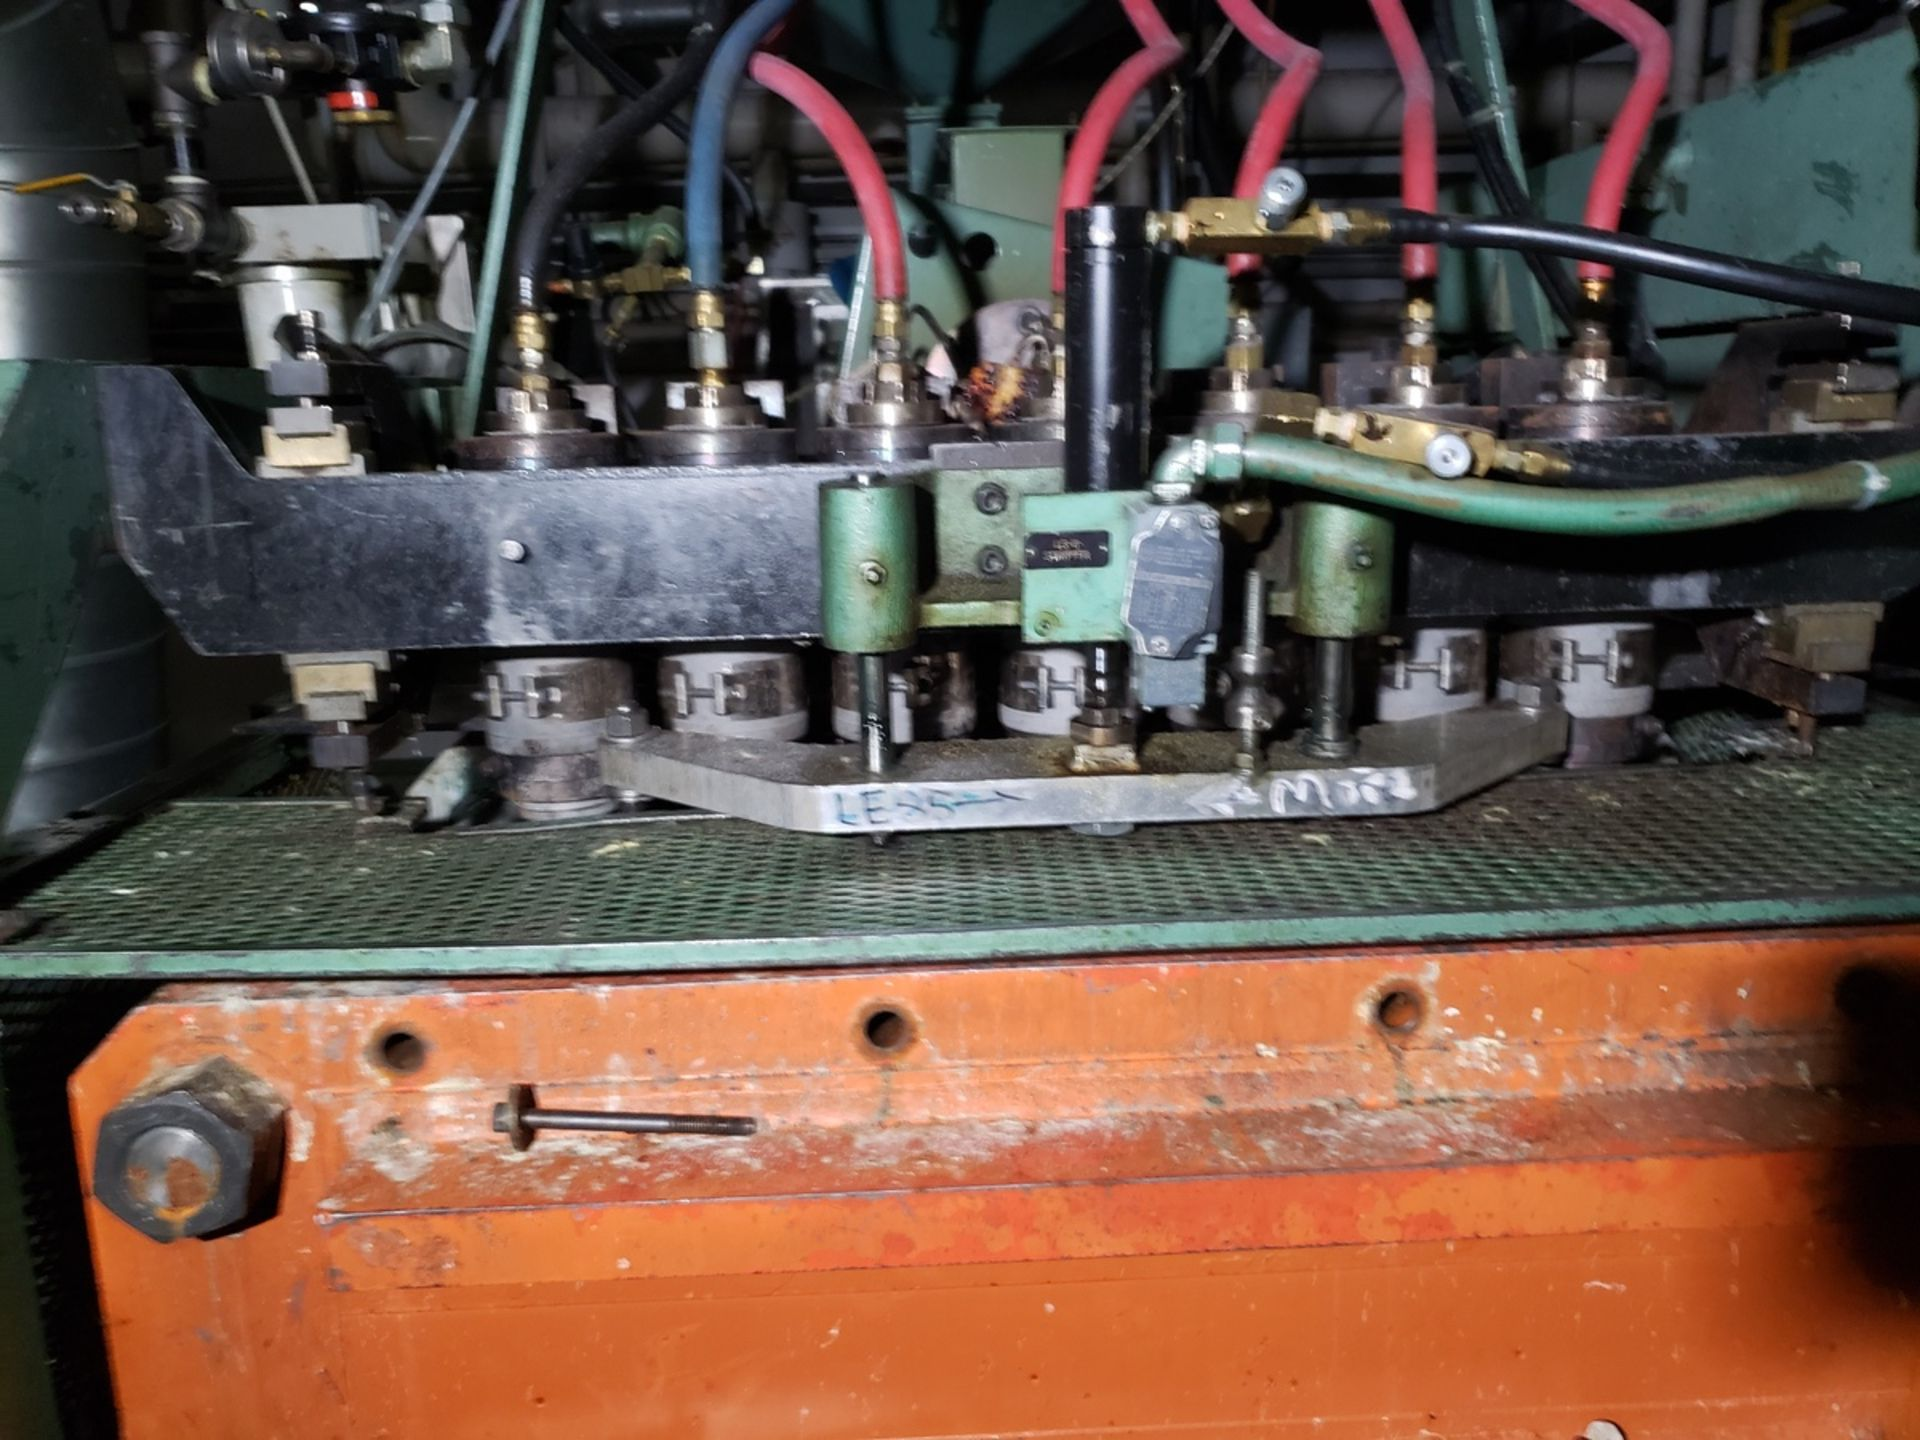 Uniloy 7-Head Blow Molding Machine, M# 250R1, S/N 250R1-3944 | Rig Fee: $14500 - Image 7 of 8